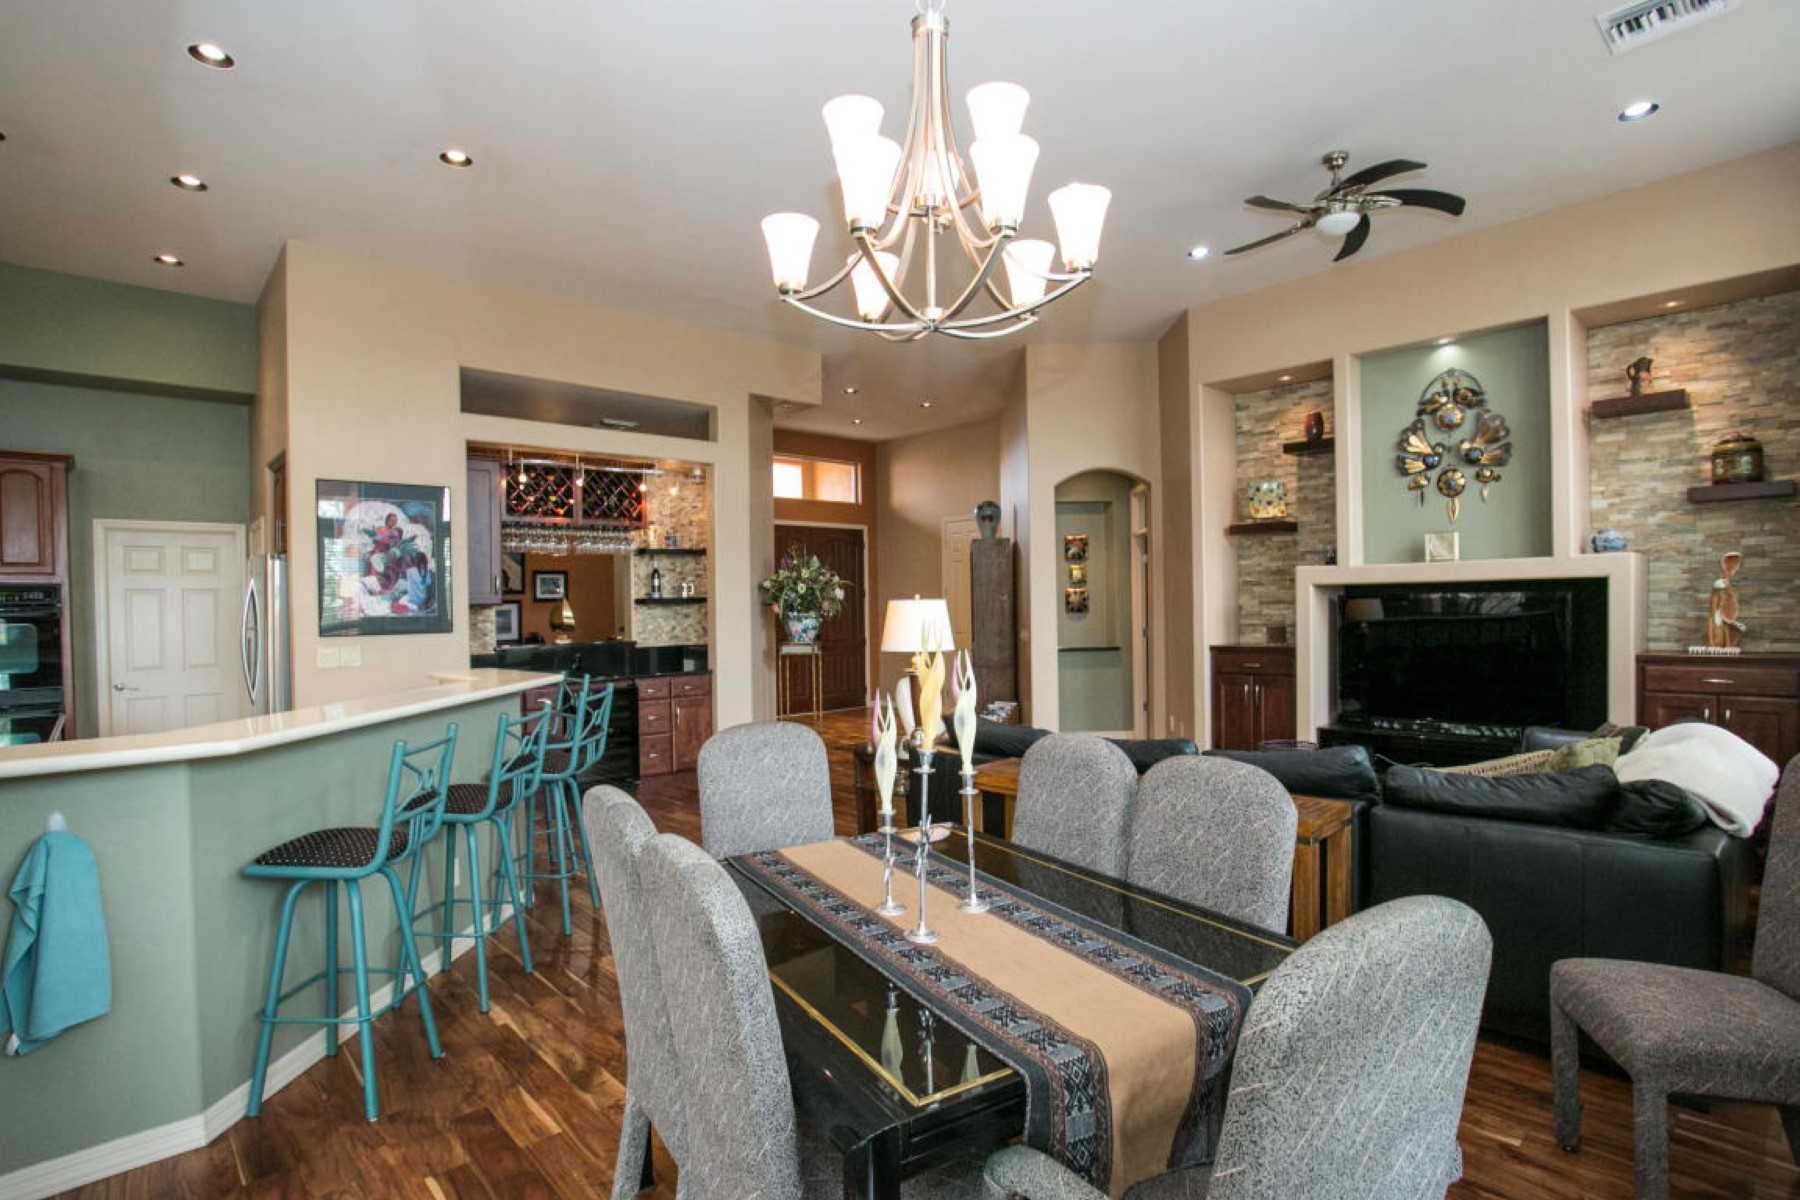 Single Family Home for Sale at Spectacular updated home in Oro Valley 13765 N Slazenger Drive Oro Valley, Arizona, 85755 United States